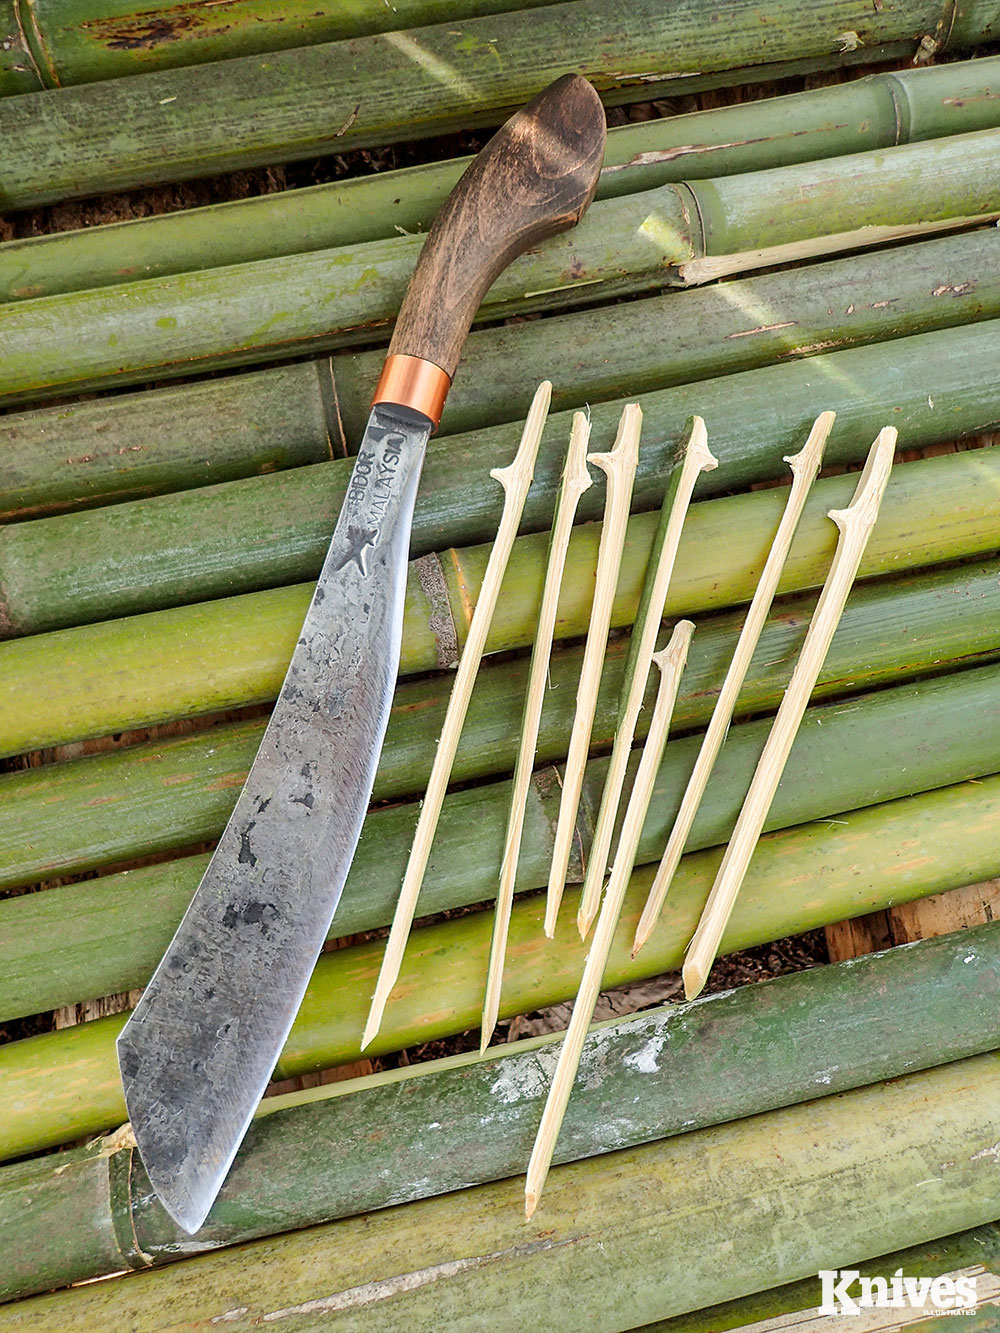 Bamboo skewers were easily made with the Duku Chandong using a section close to the nodes of the bamboo. This allows food to stay on the skewer and not slip off while holding upright.